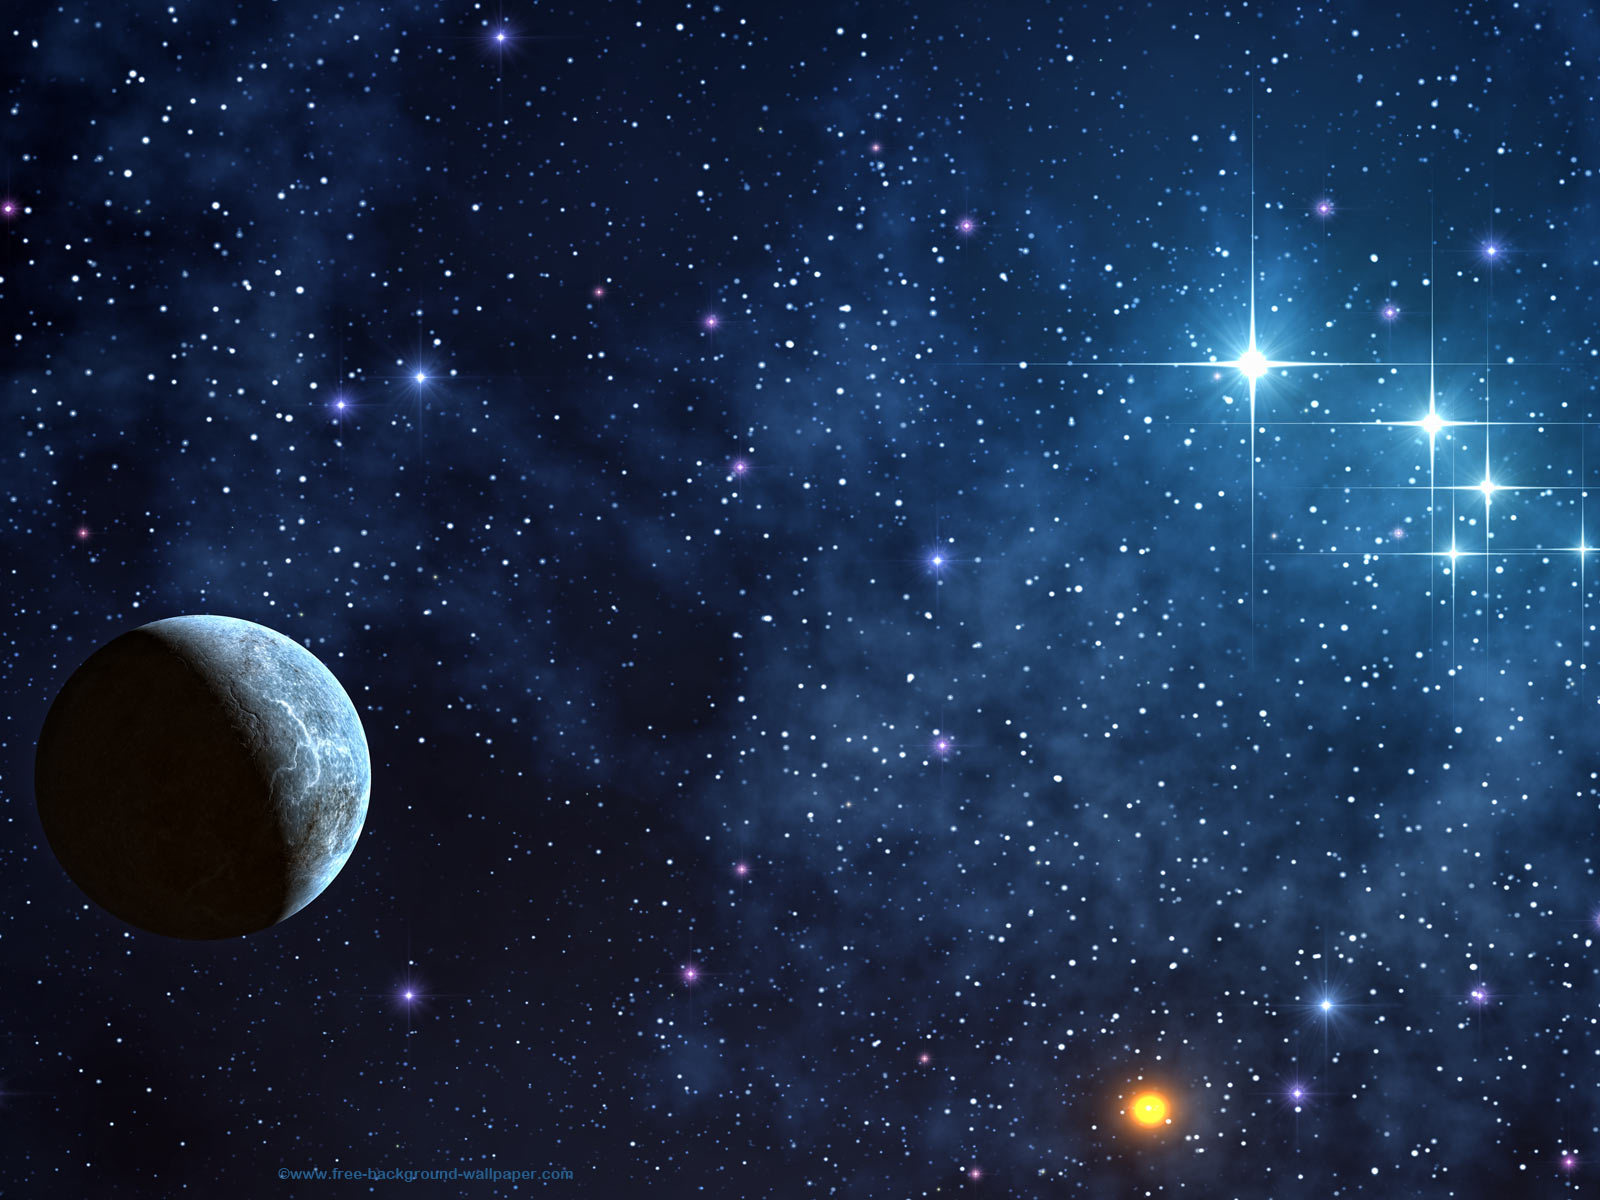 Space Stars Background 3343 Hd Wallpapers in Space   Imagescicom 1600x1200